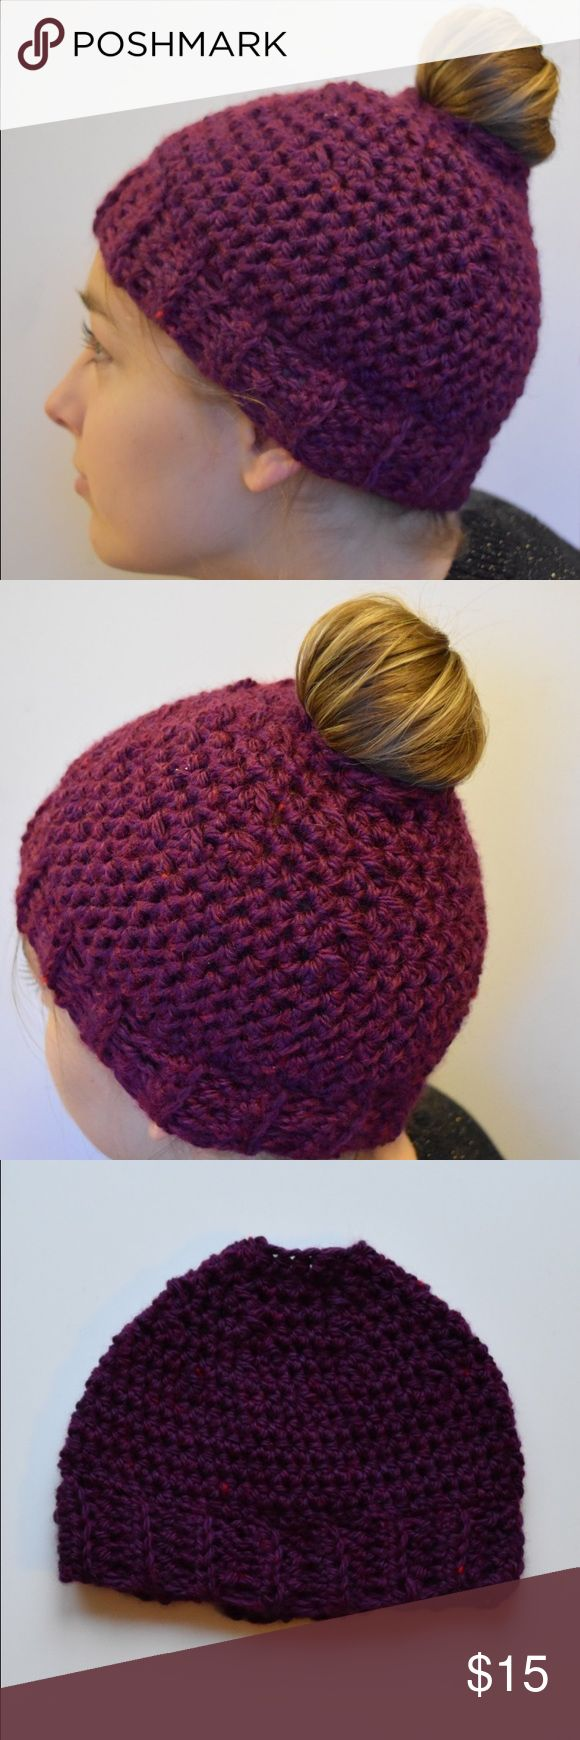 Handmade Bun Hat/ Ponytail Hat Handmade crochet hat in the viral bun hat/ ponytail hat style. Opening at top leaves space to pull your bun or ponytail through. Ribbed trim  Purple Wool Blend Yarn  Machine wash gentle, lay flat to dry Accessories Hats